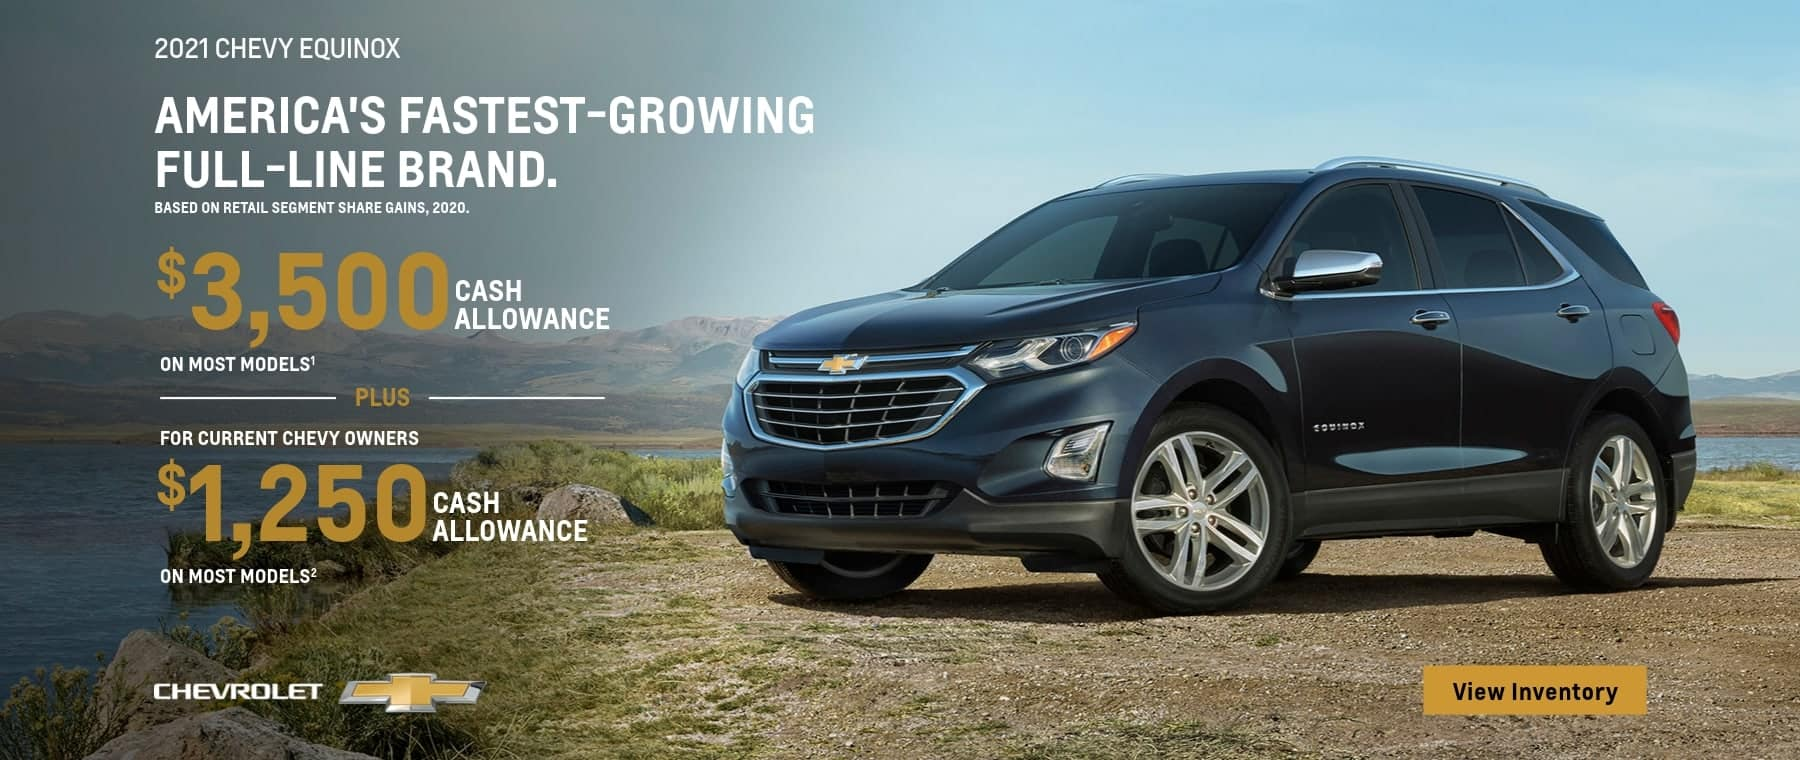 2021 Chevy Equinox $3,500 cash allowance on most models plus current Chevy owners $1,250 Cash Allowance on most models.